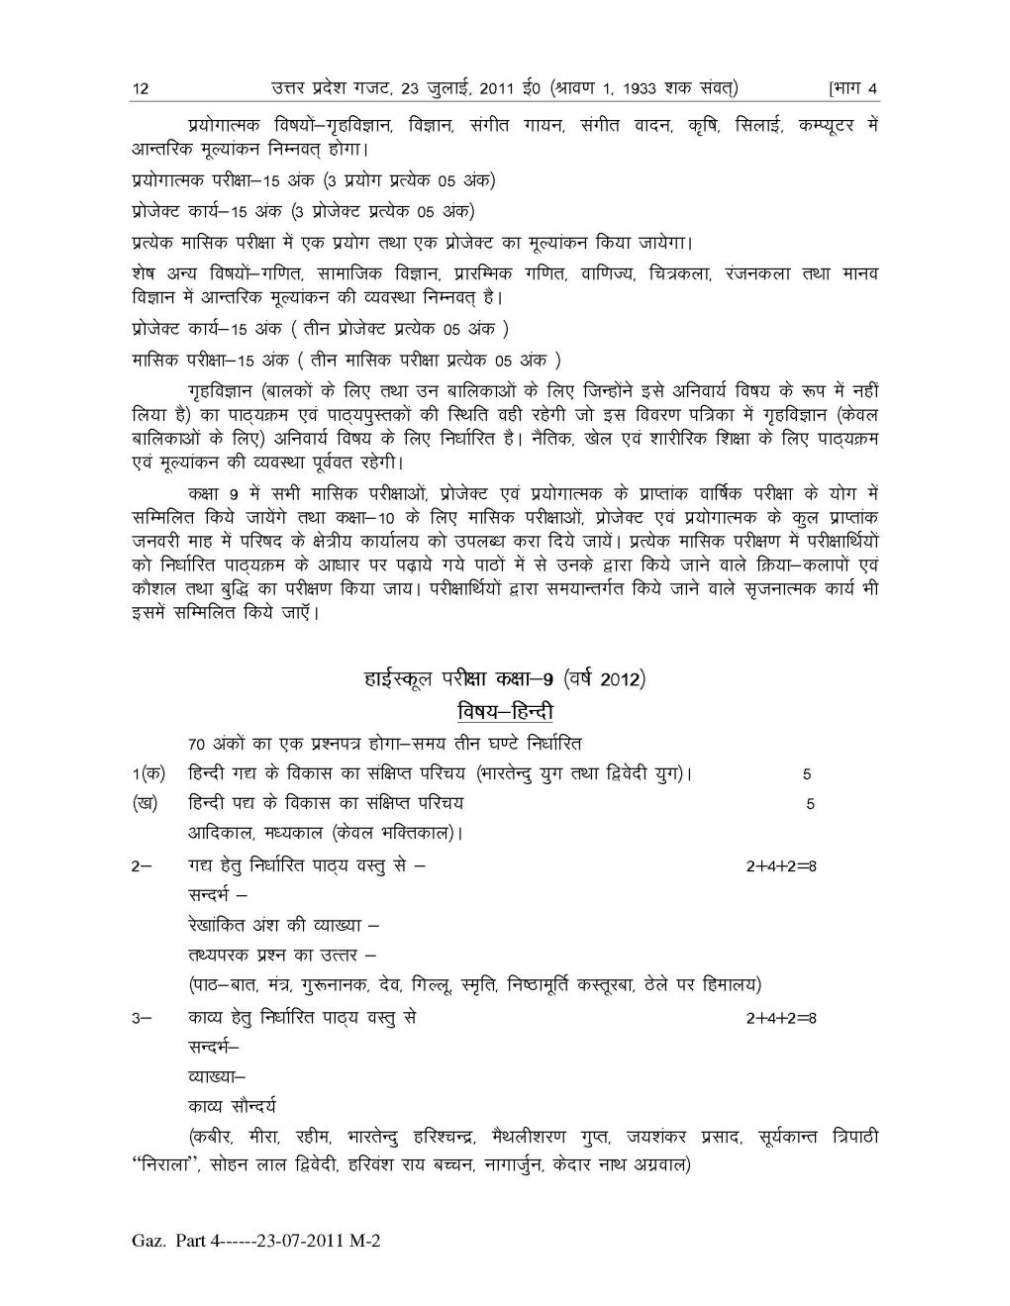 Worksheet Comprehension Passages For Grade 2 worksheet comprehension passages wosenly free short for grade 3 mikyu comprehensions class 7 cbse